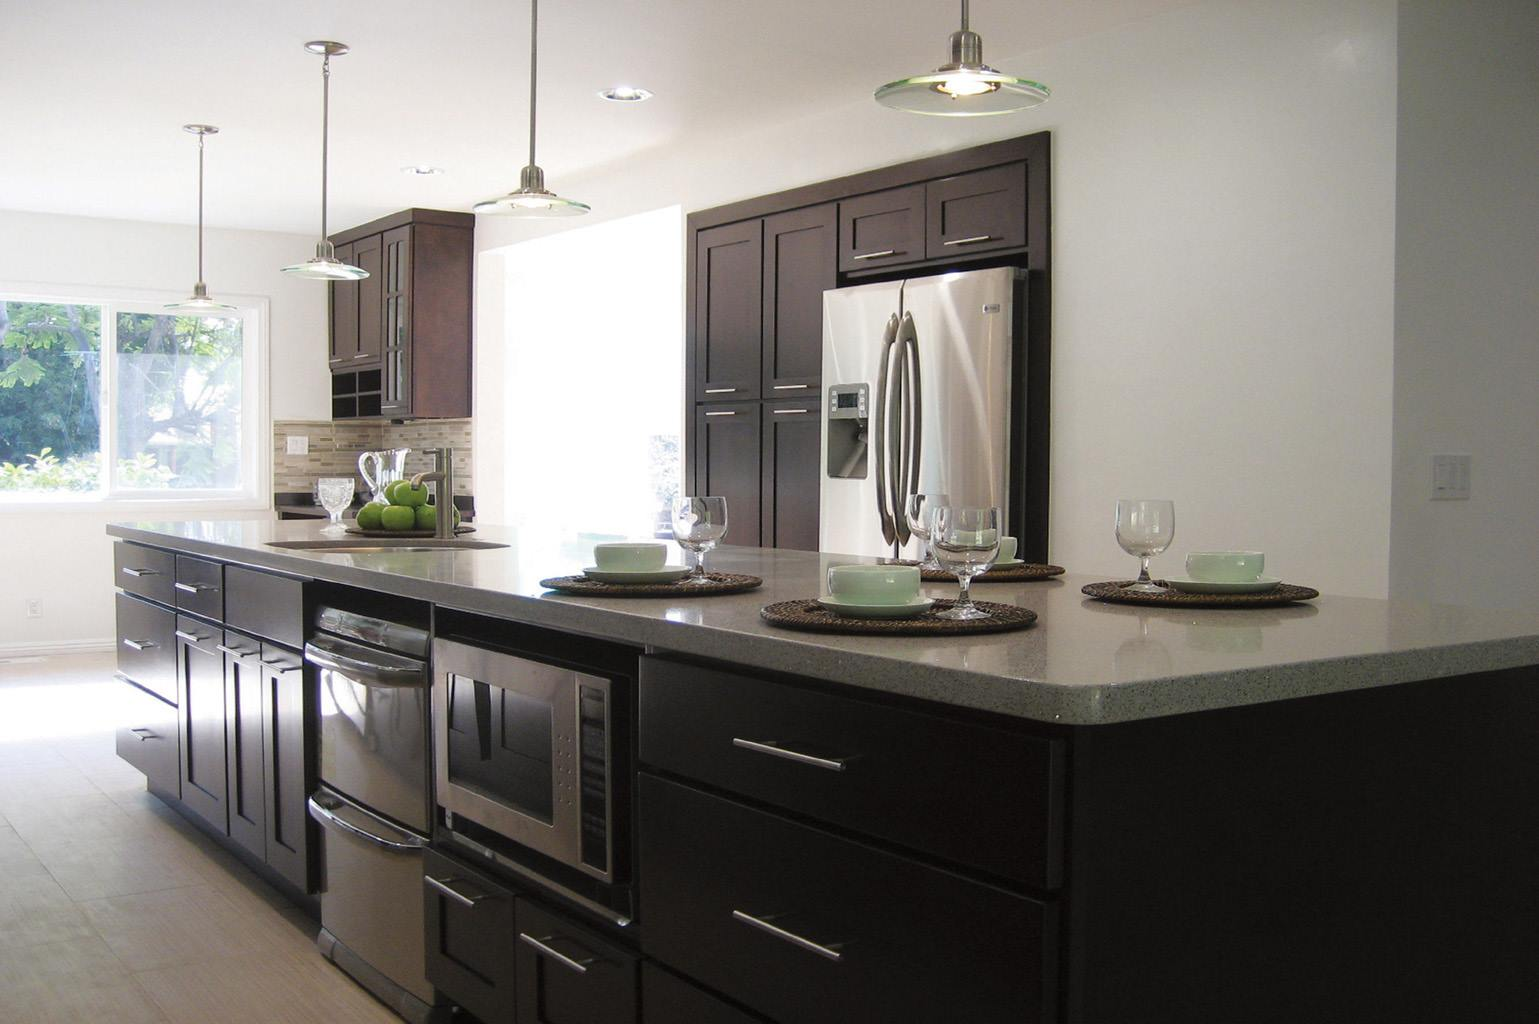 Kitchen cabinet lingo for the novice part two for Kitchen cabinets 0 financing